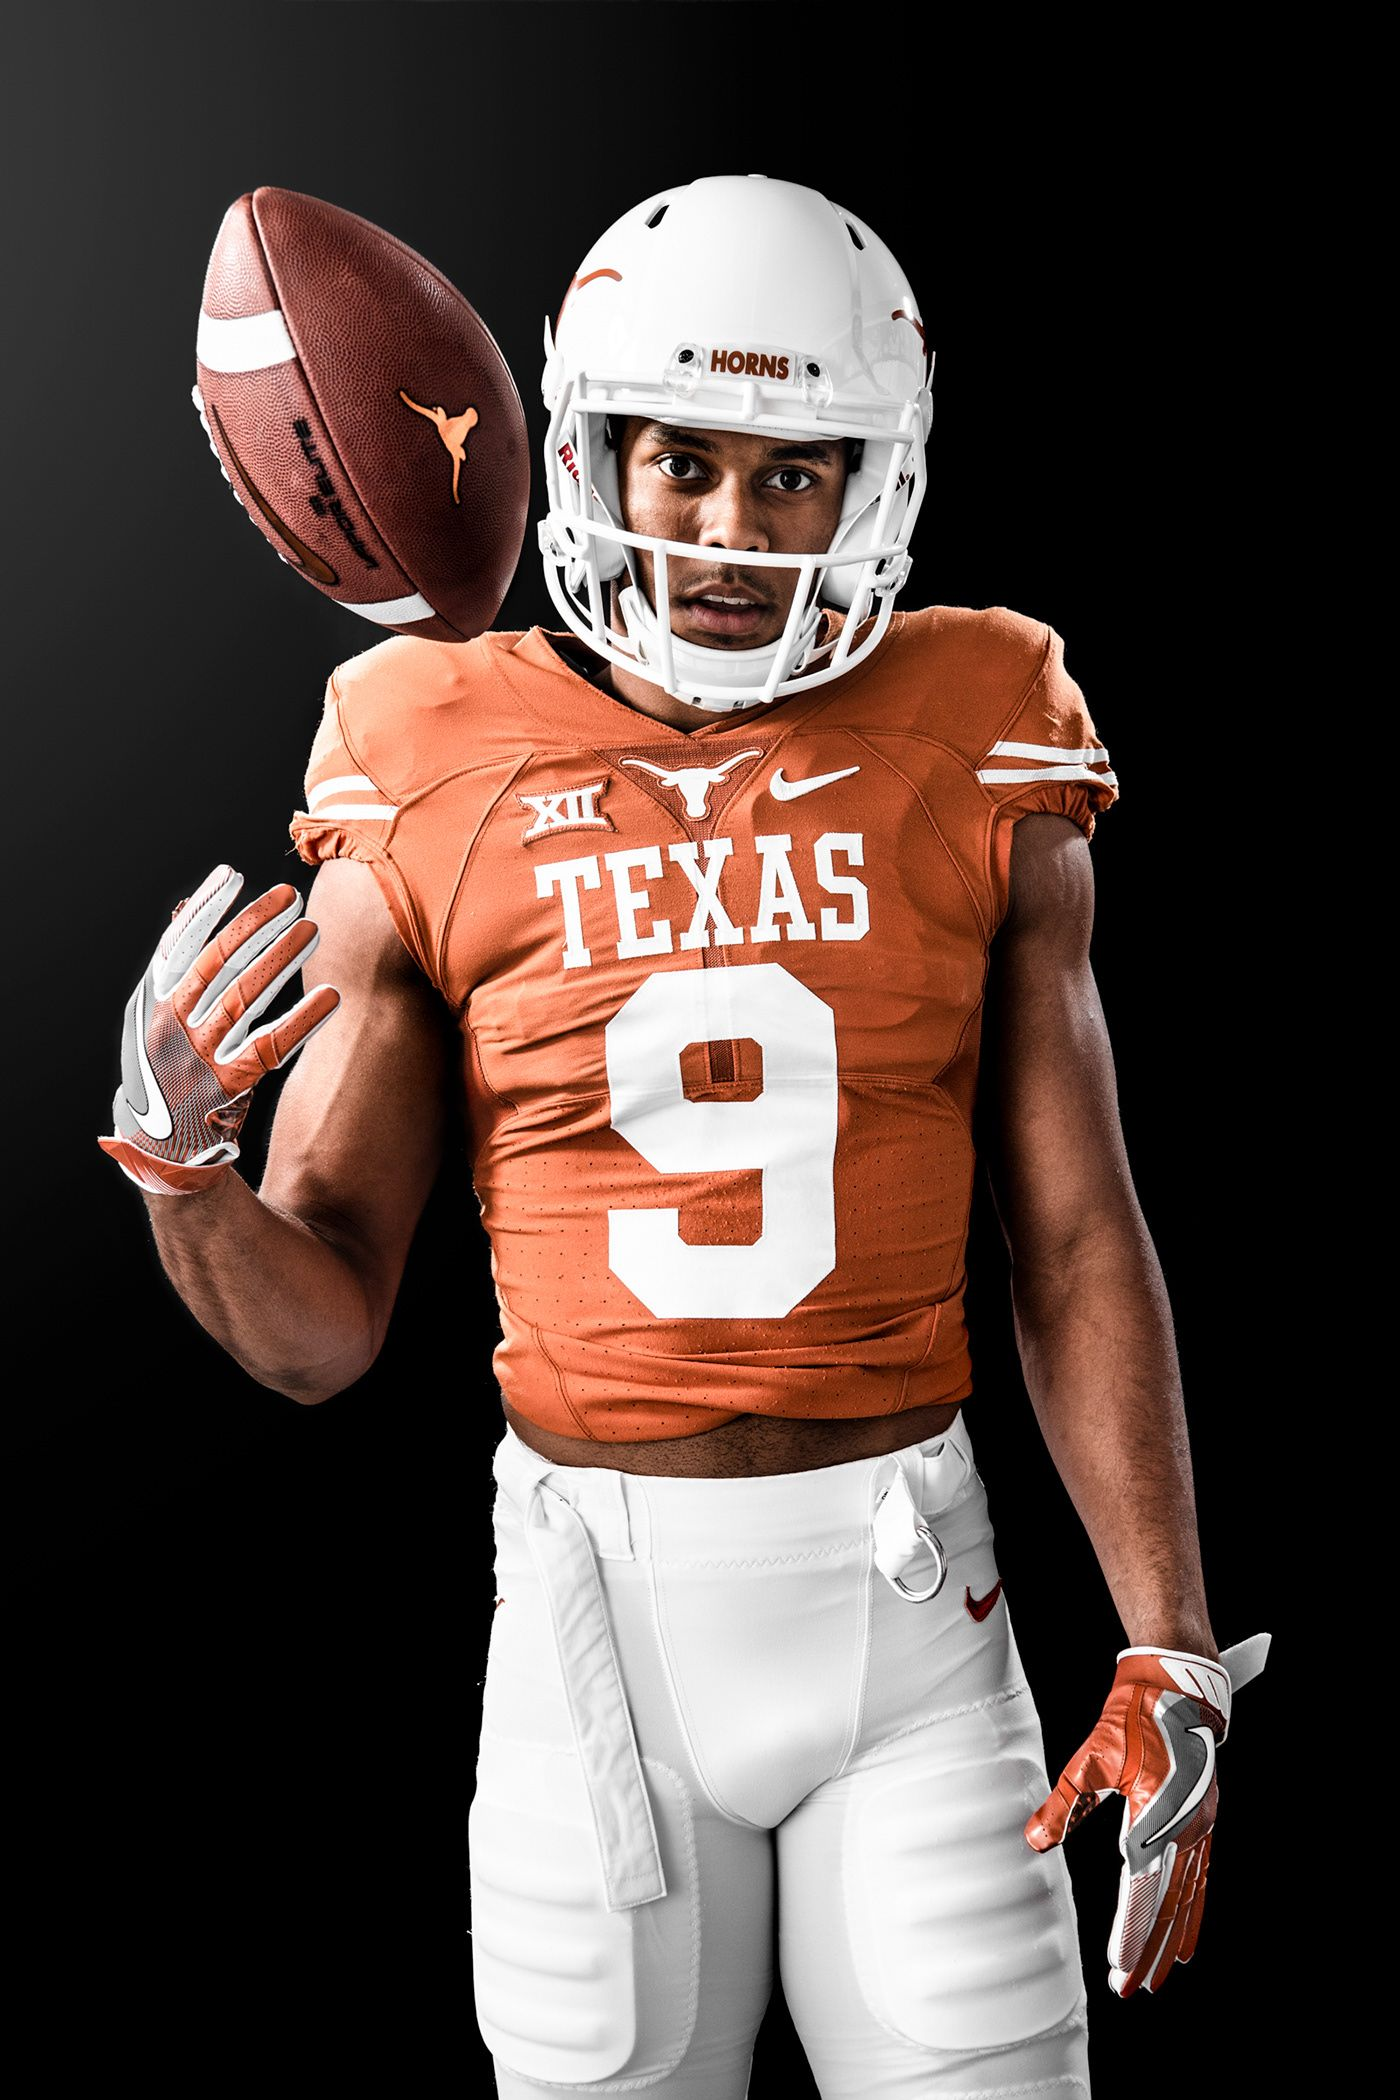 Pin By Slabedits On Photoshoot Poses Texas Longhorns Football Longhorns Football Texas Football